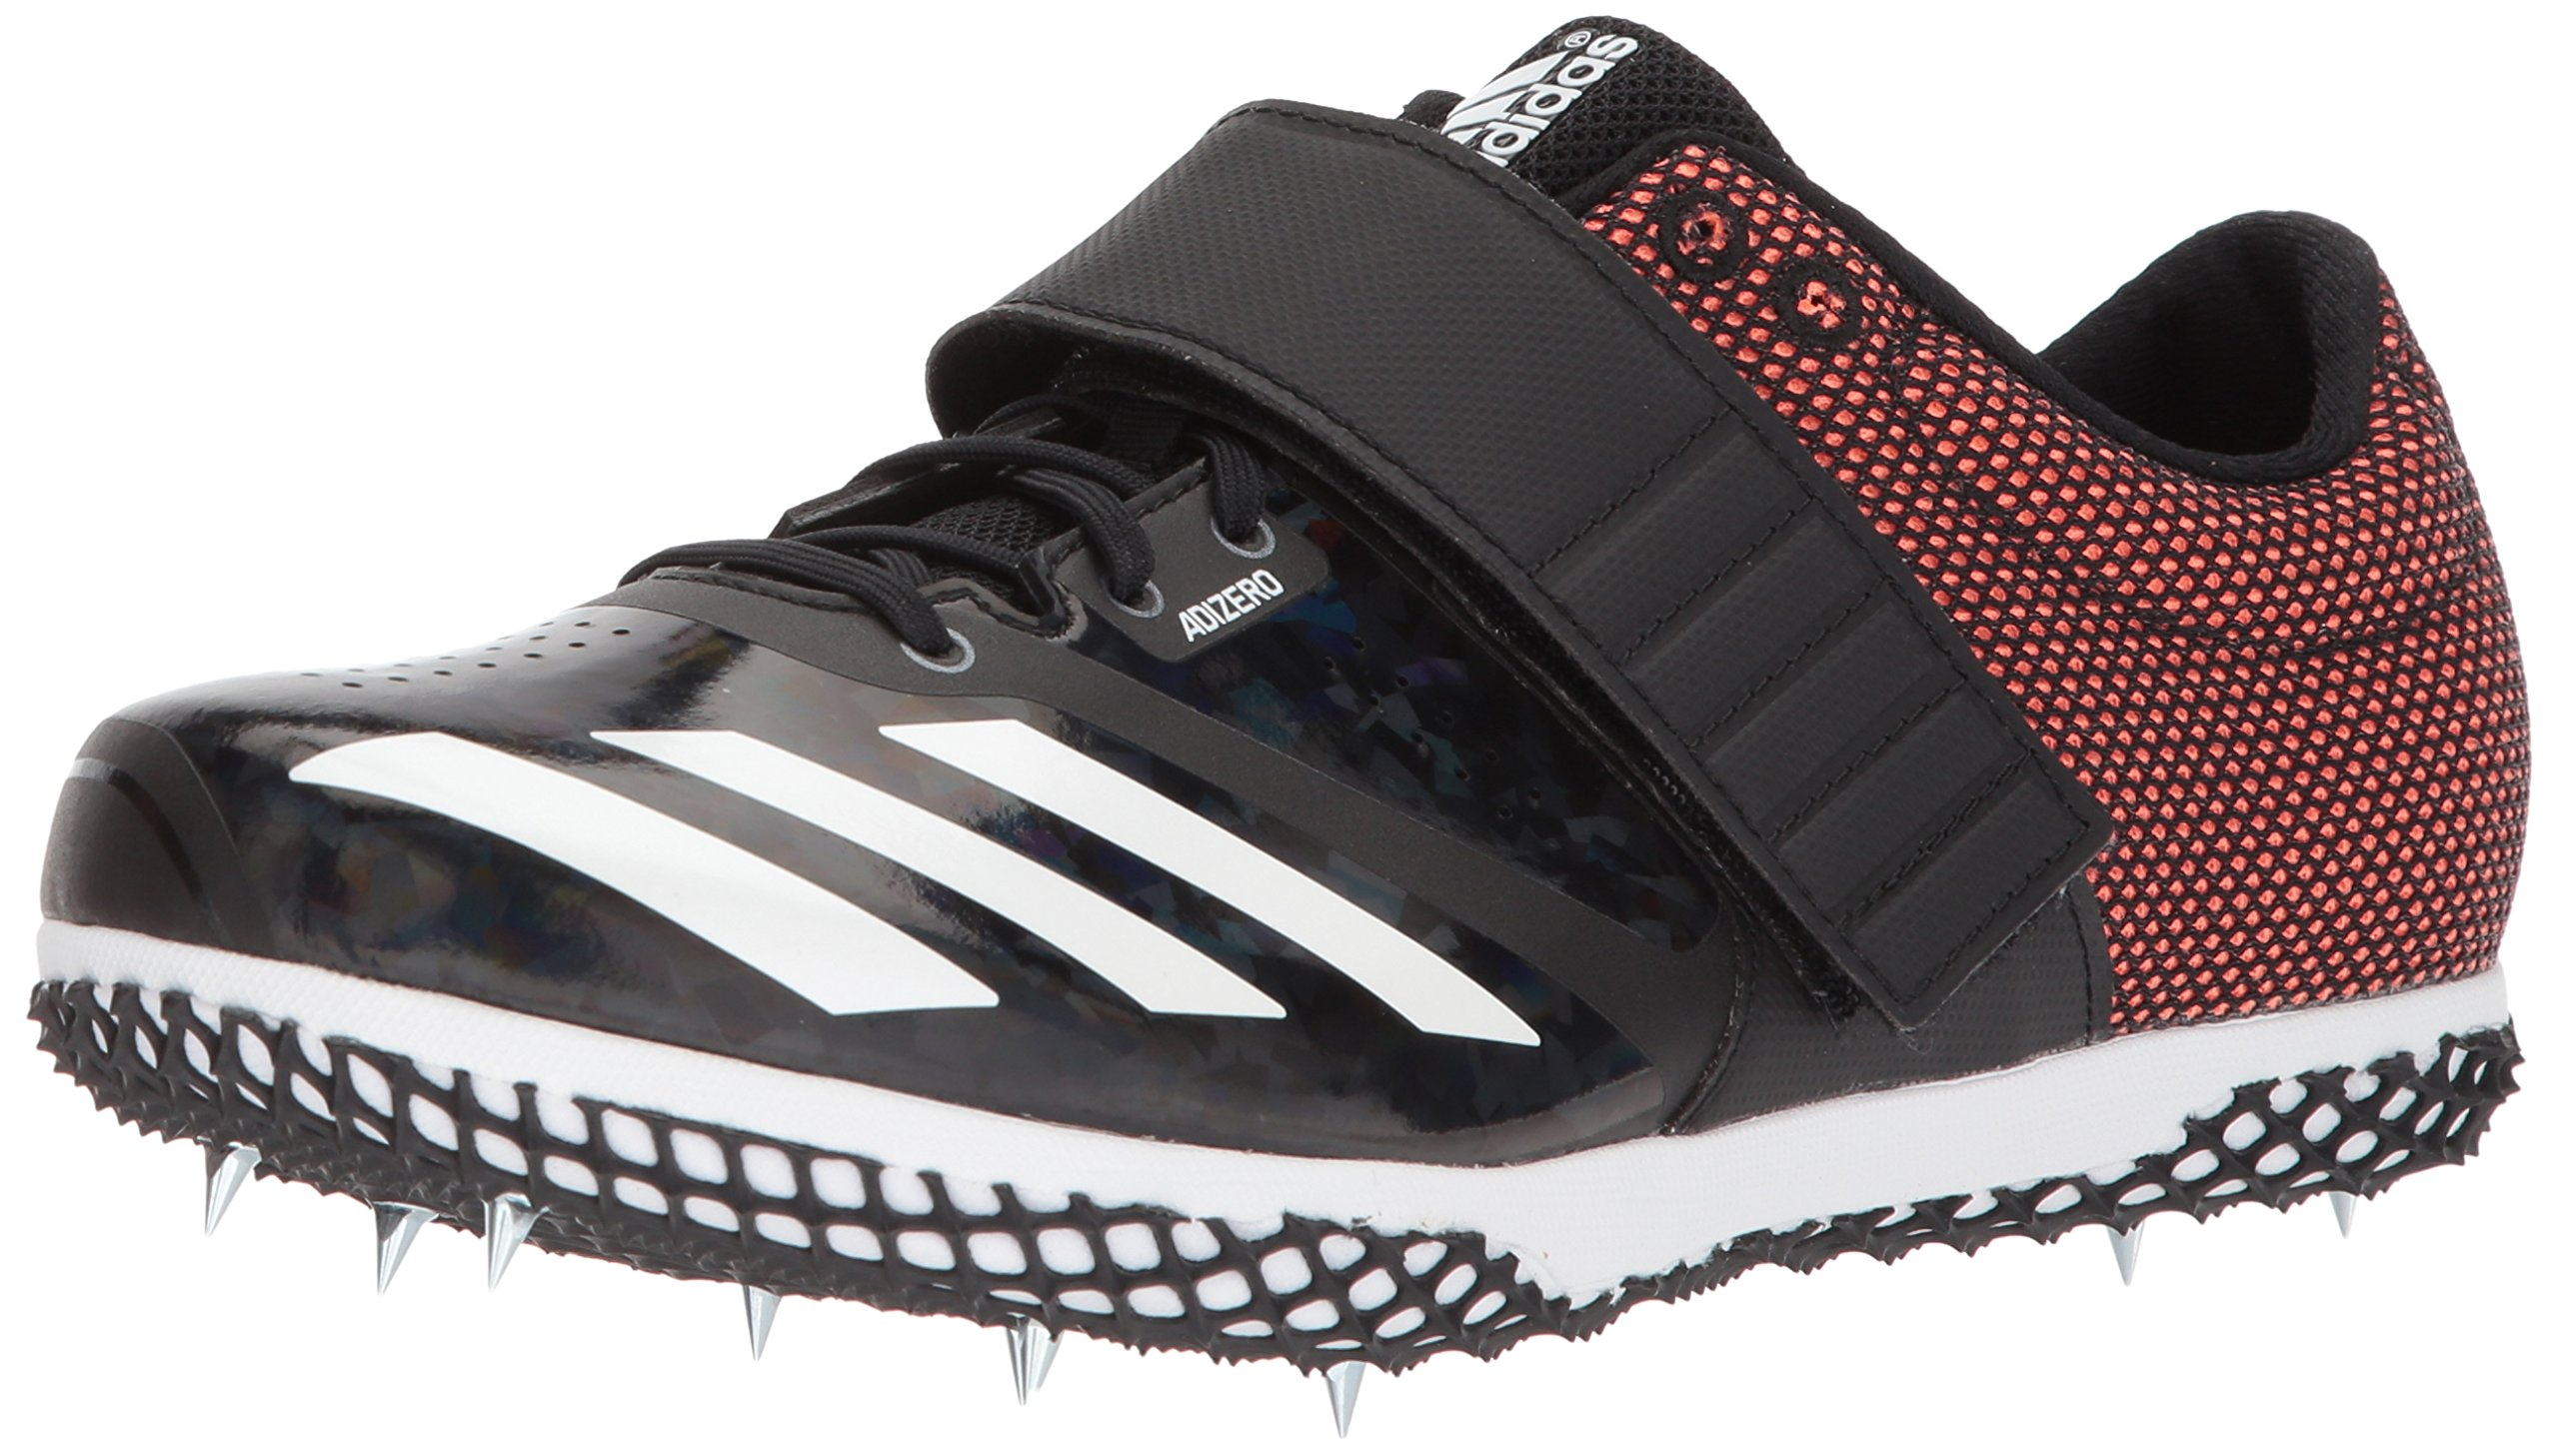 adidas Adizero HJ Running Shoe, Core Black, Solar Orange, FTWR White, 7.5 M US